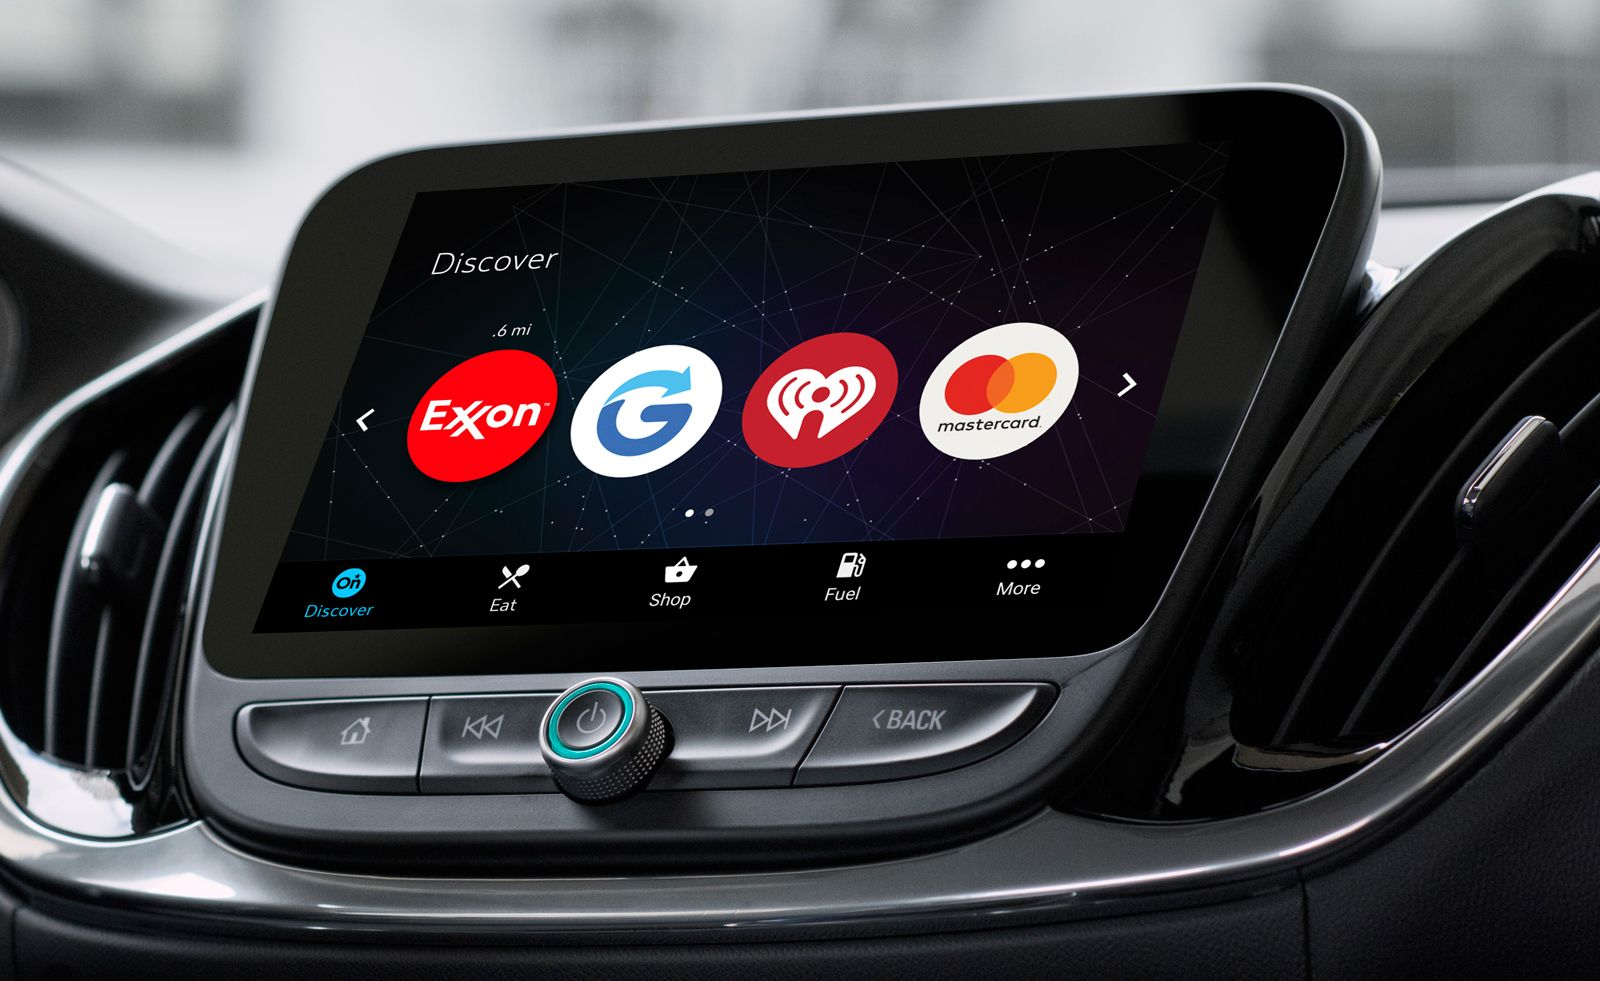 GM will use Watson AI to services on the road